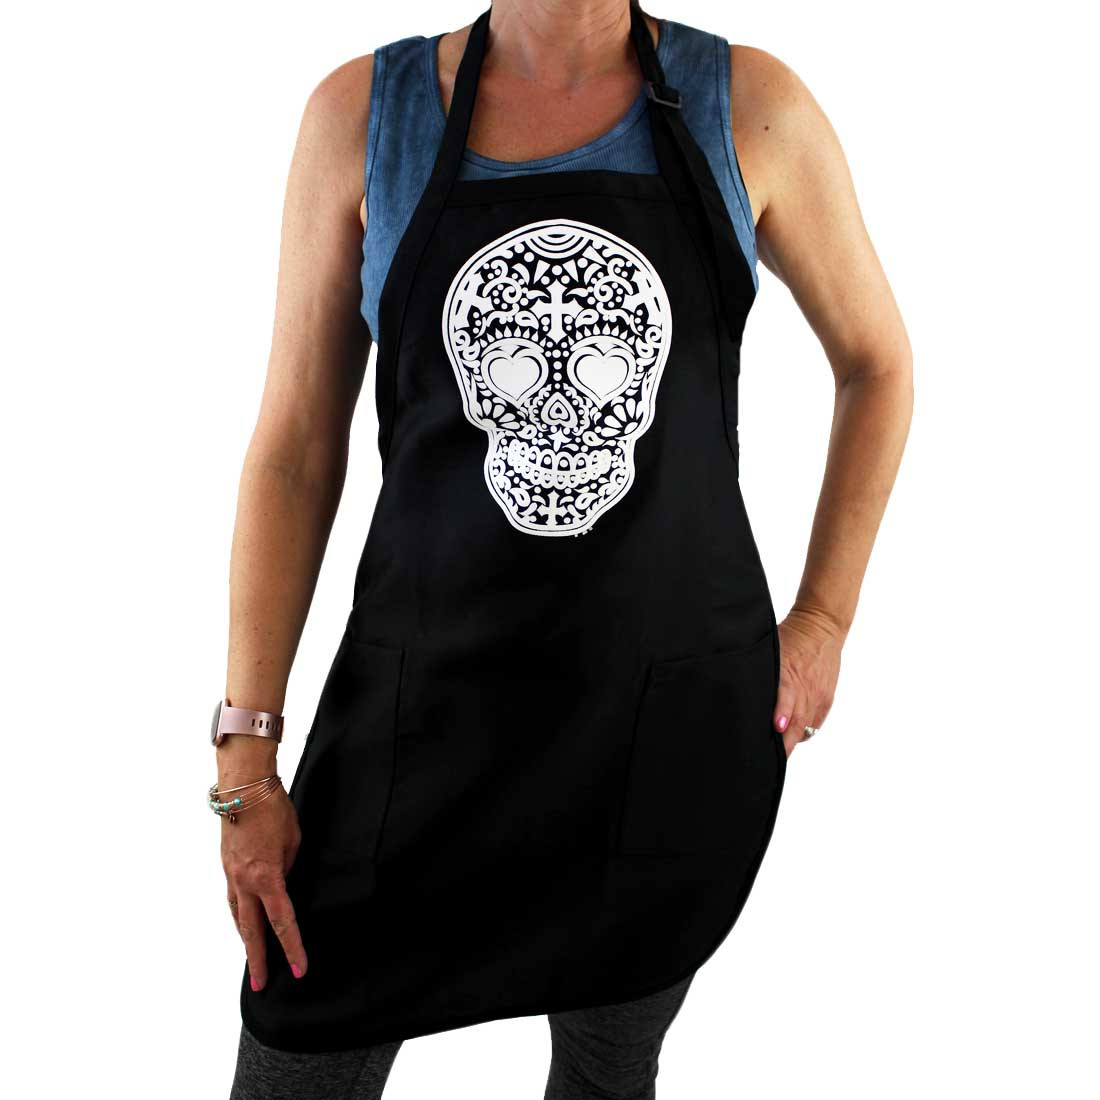 Full Length Black Apron with White Day of the Dead Design